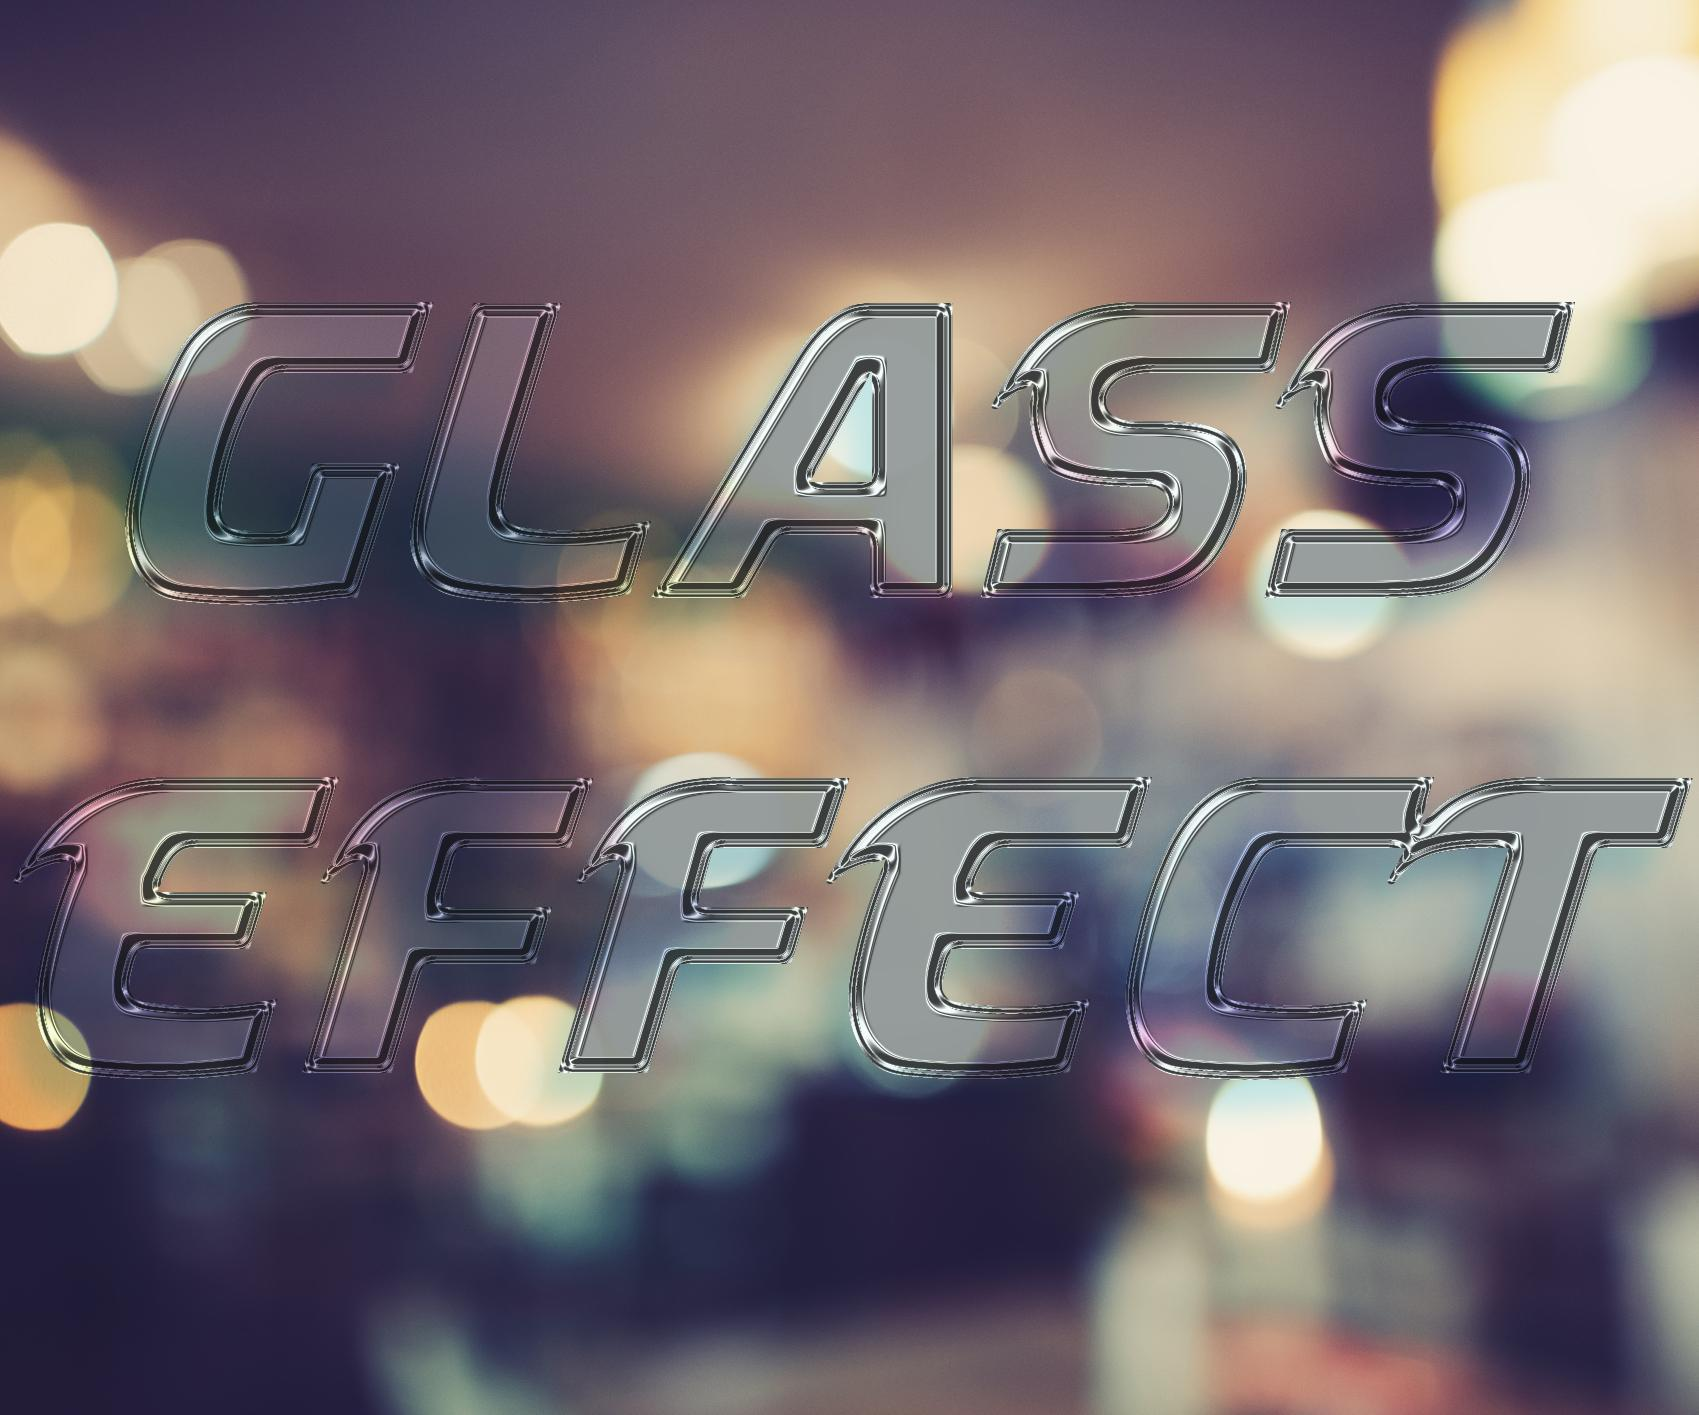 How to create a glass effect in Photoshop - Digital Arts